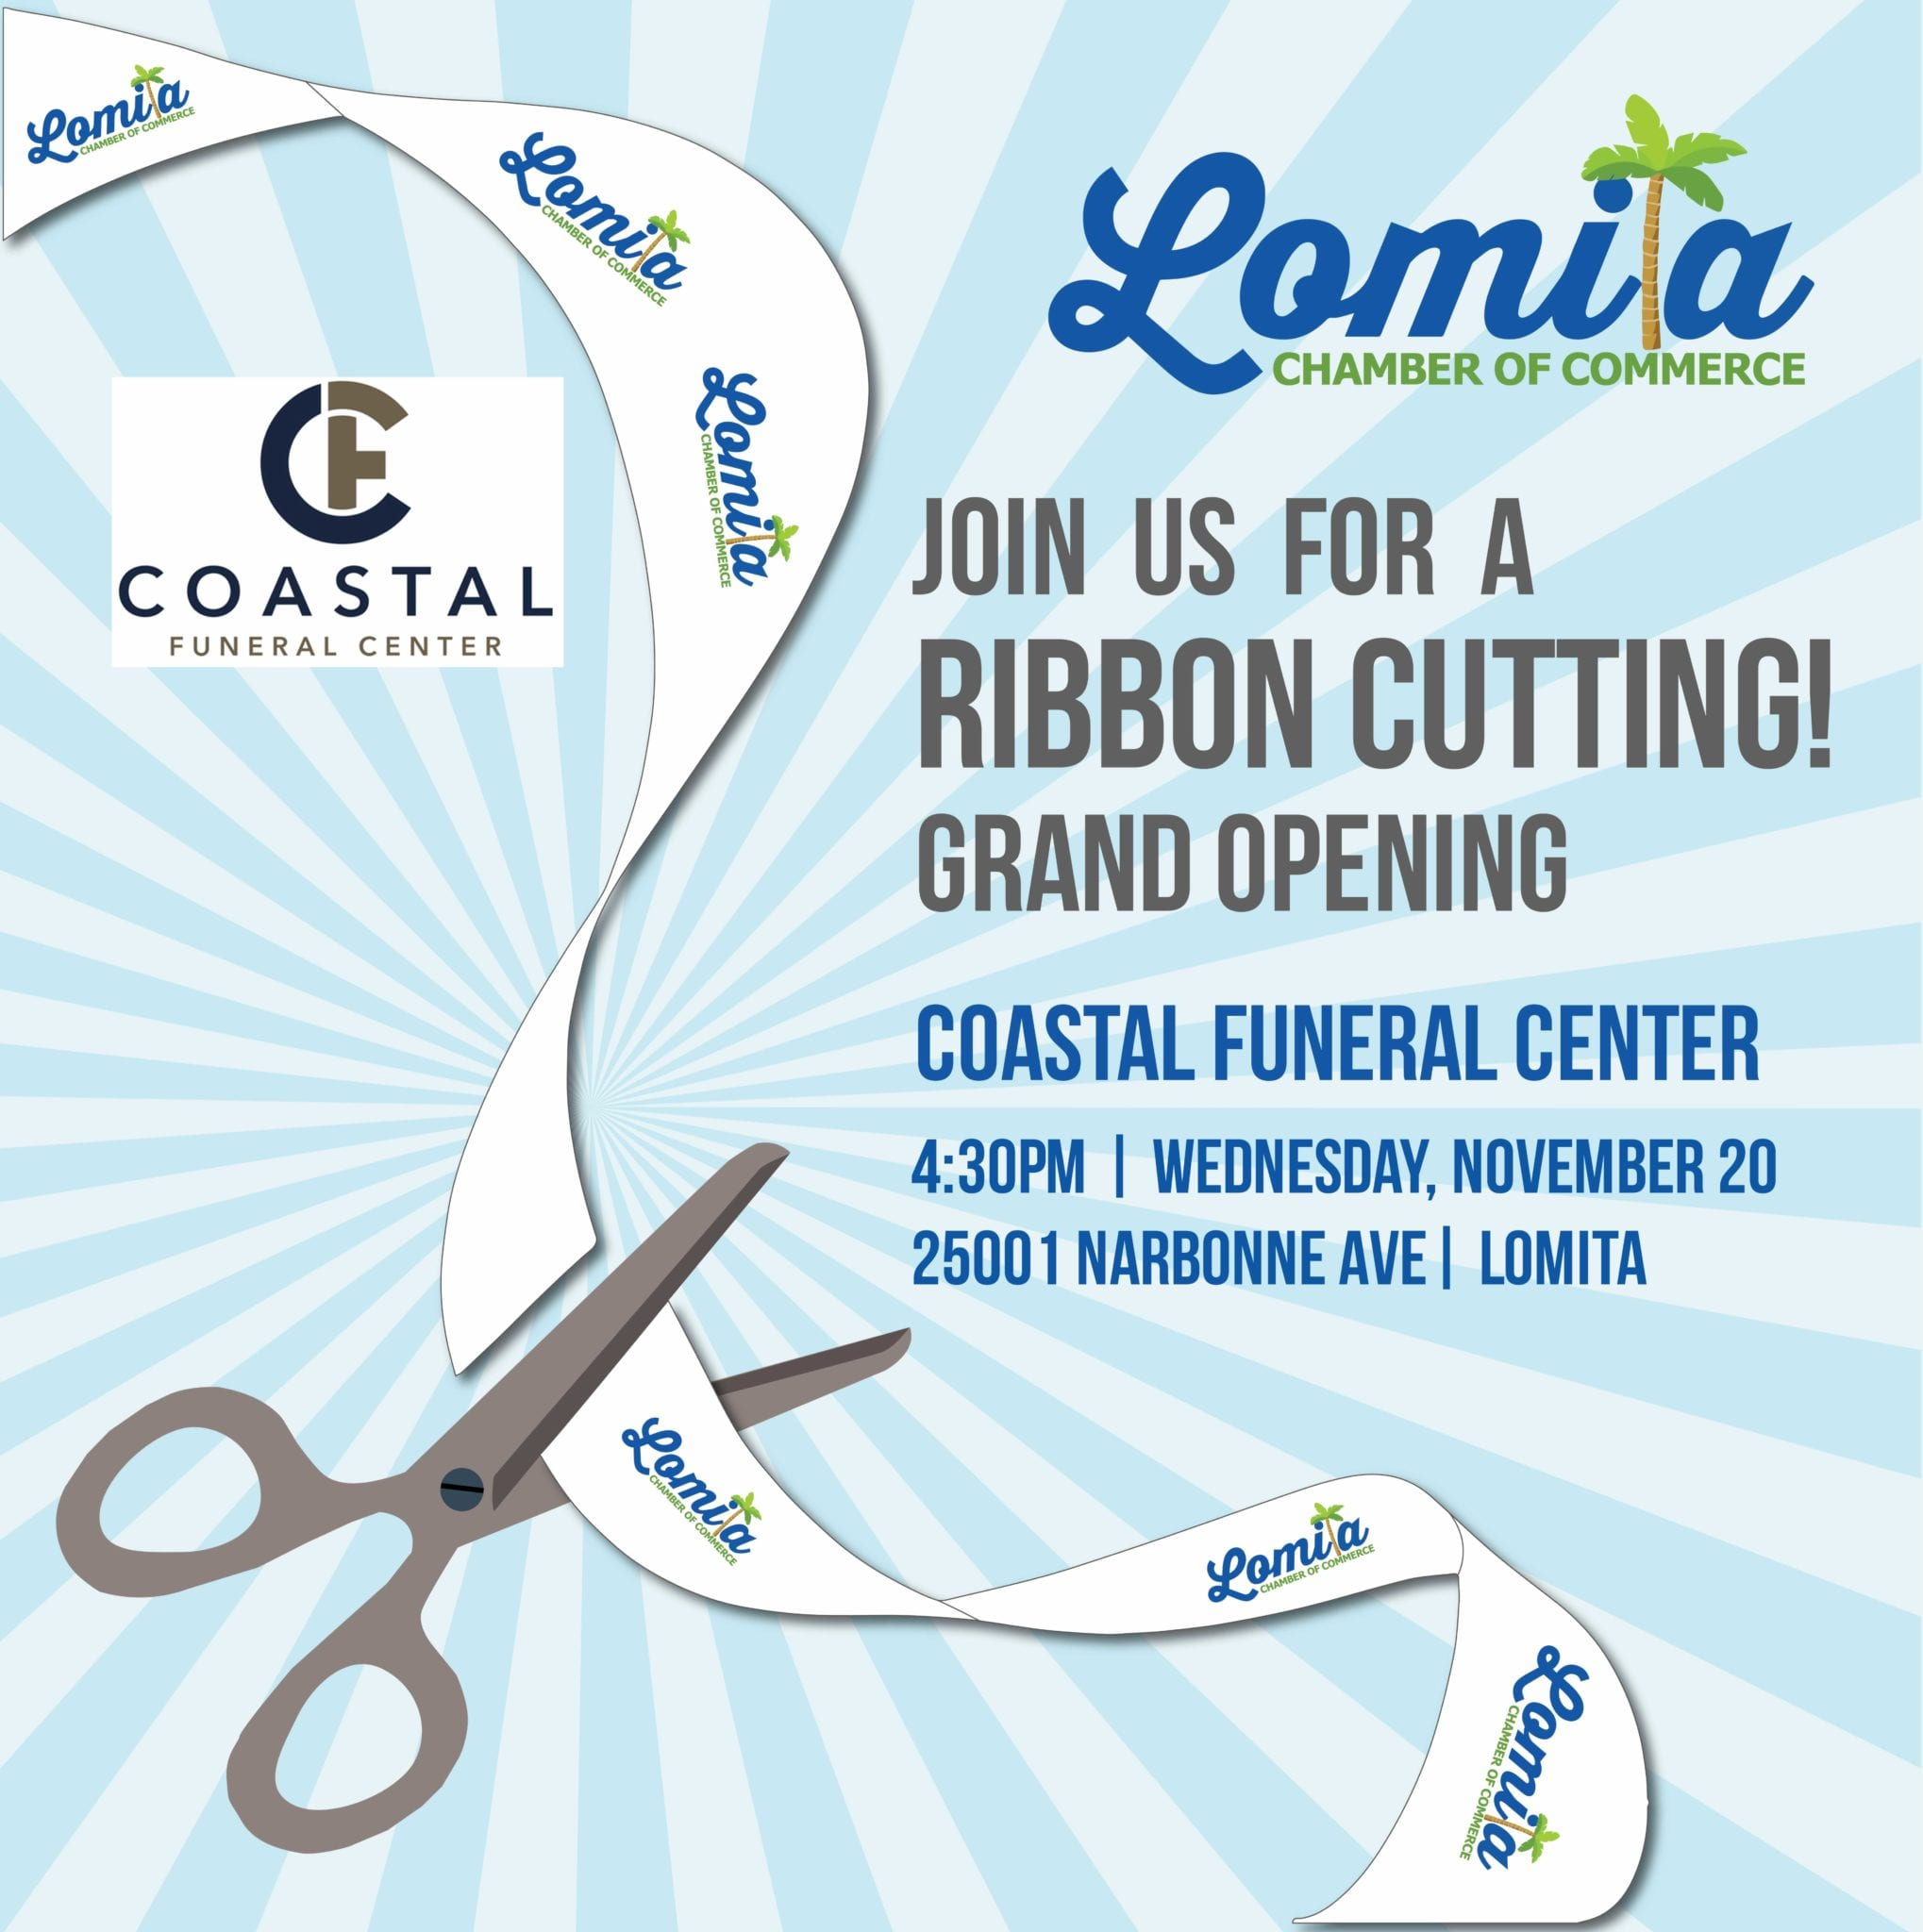 Ribbon Cutting and Grand Opening for Coastal Funeral Center in Lomita